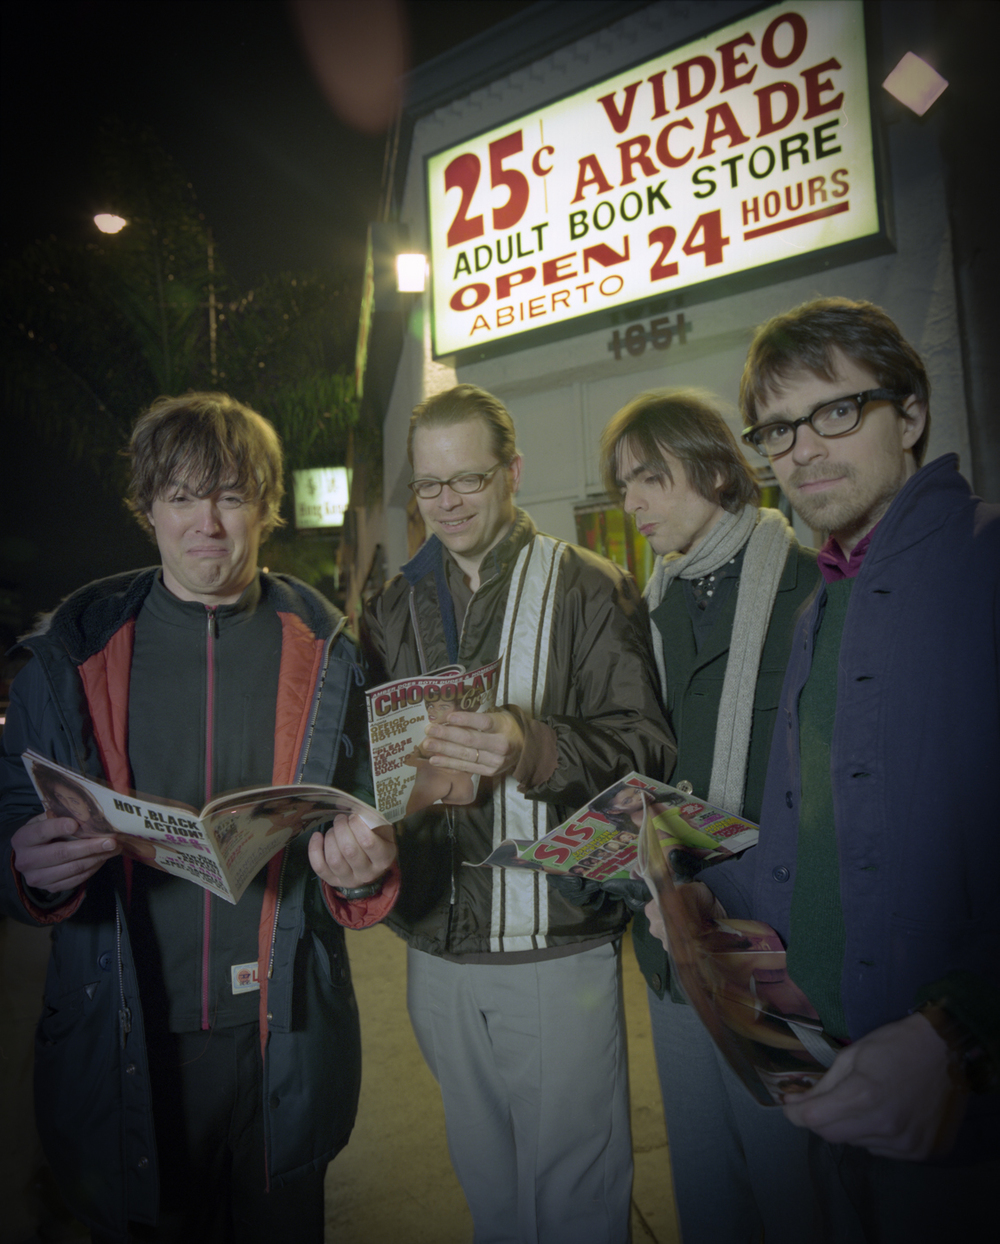 Weezer. Rivers Cuomo, Mikey Welsh, Patrick Wilson, Brian Bell. Photo by Sean Murphy